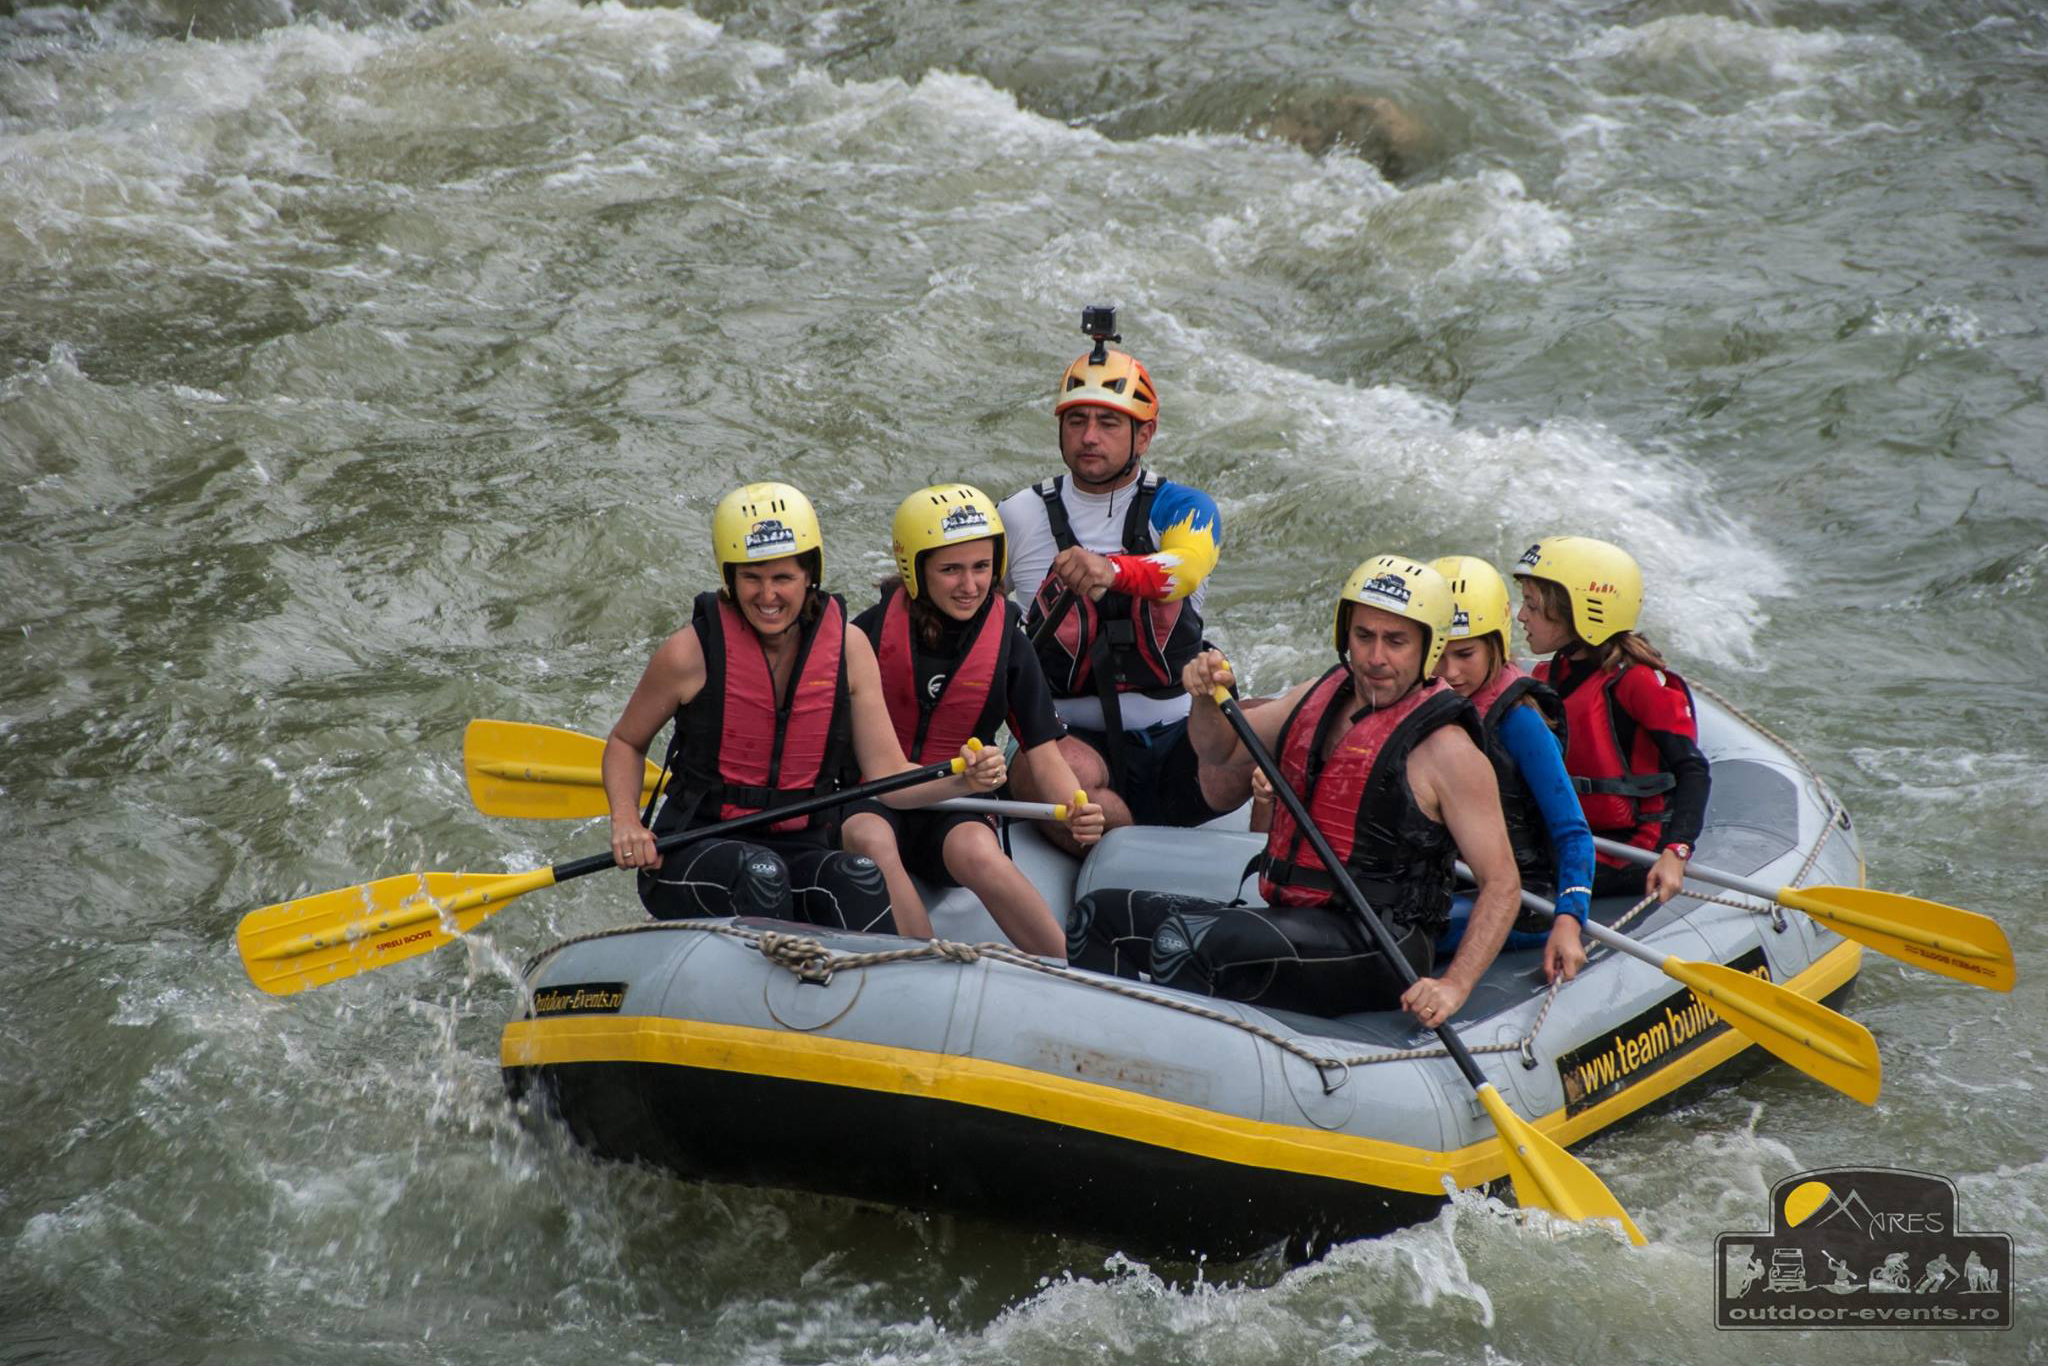 Off Road and Rafting by Mares Outdoor Events